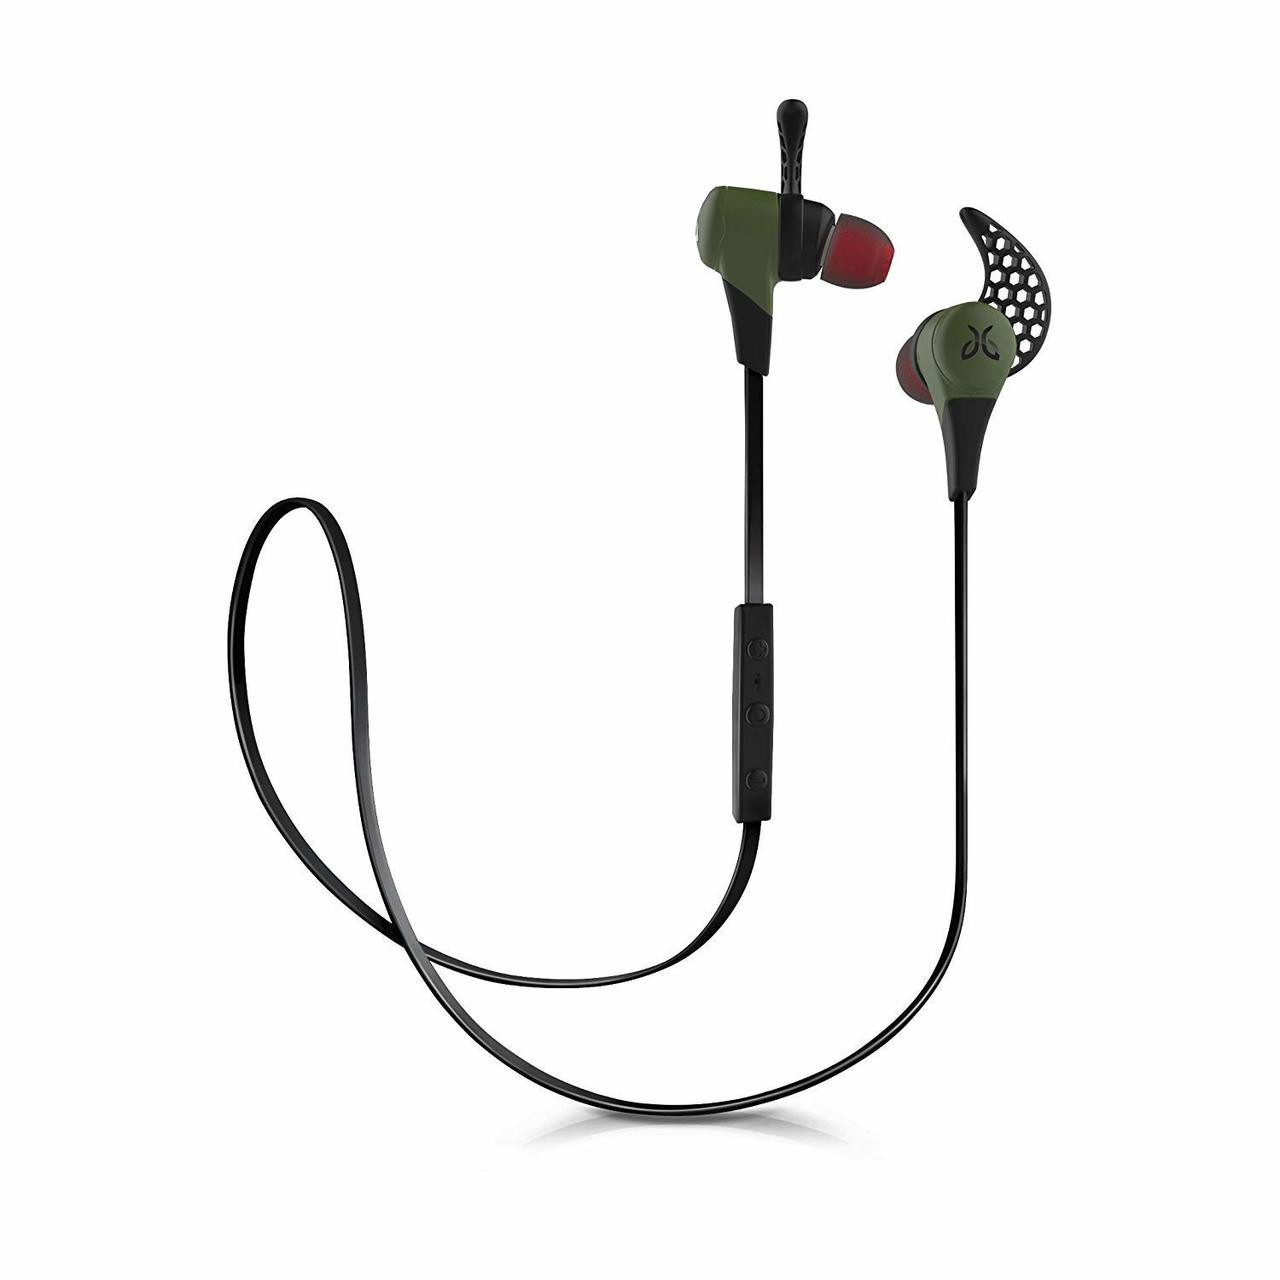 JayBird X2-GR-RB Green Sport Wireless Bluetooth Earbuds with Carrying Pouch - Refurbished